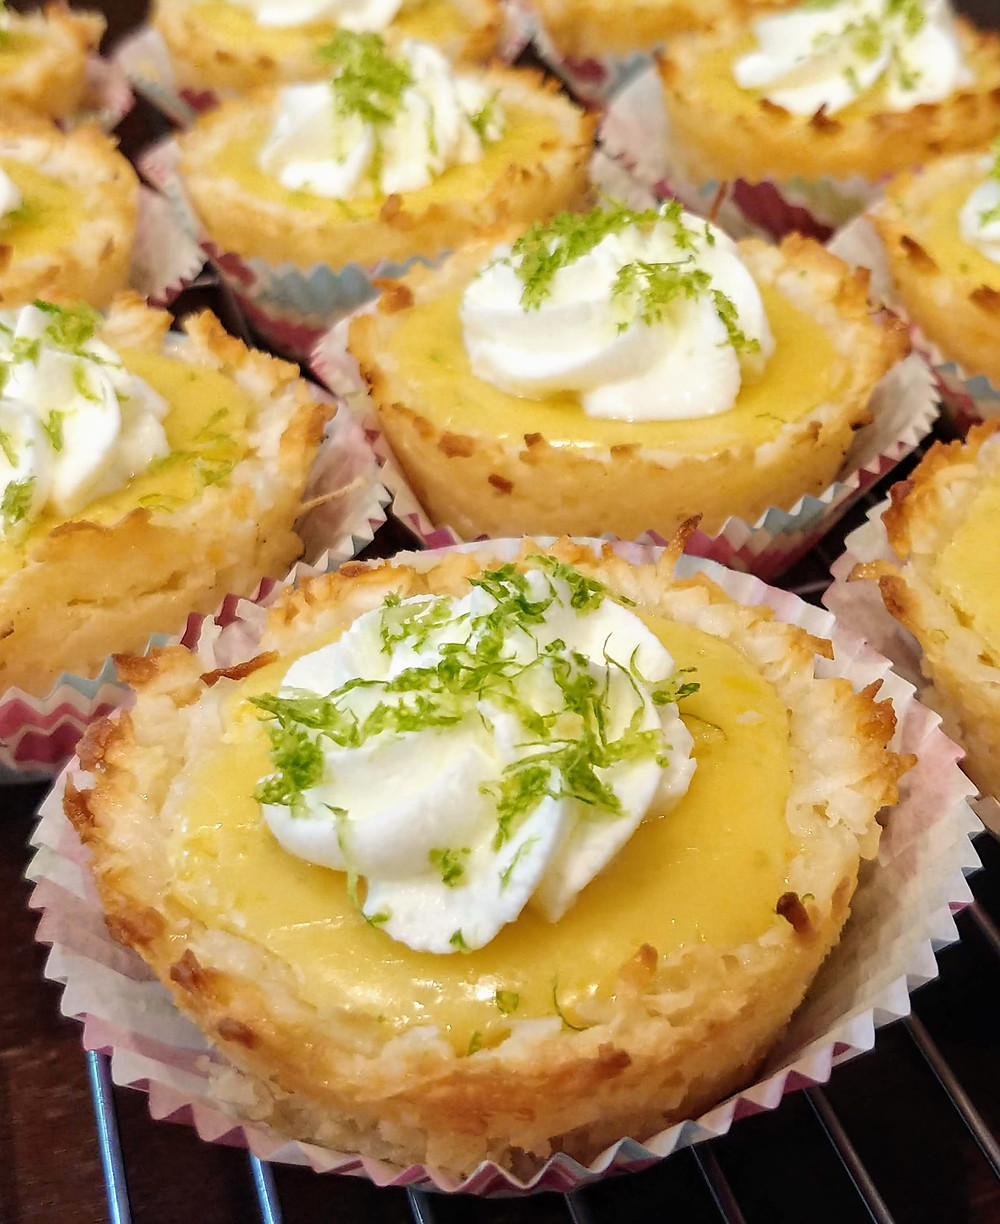 Chewy Mini Lime Tartlets with Coconut Macaroon Crust